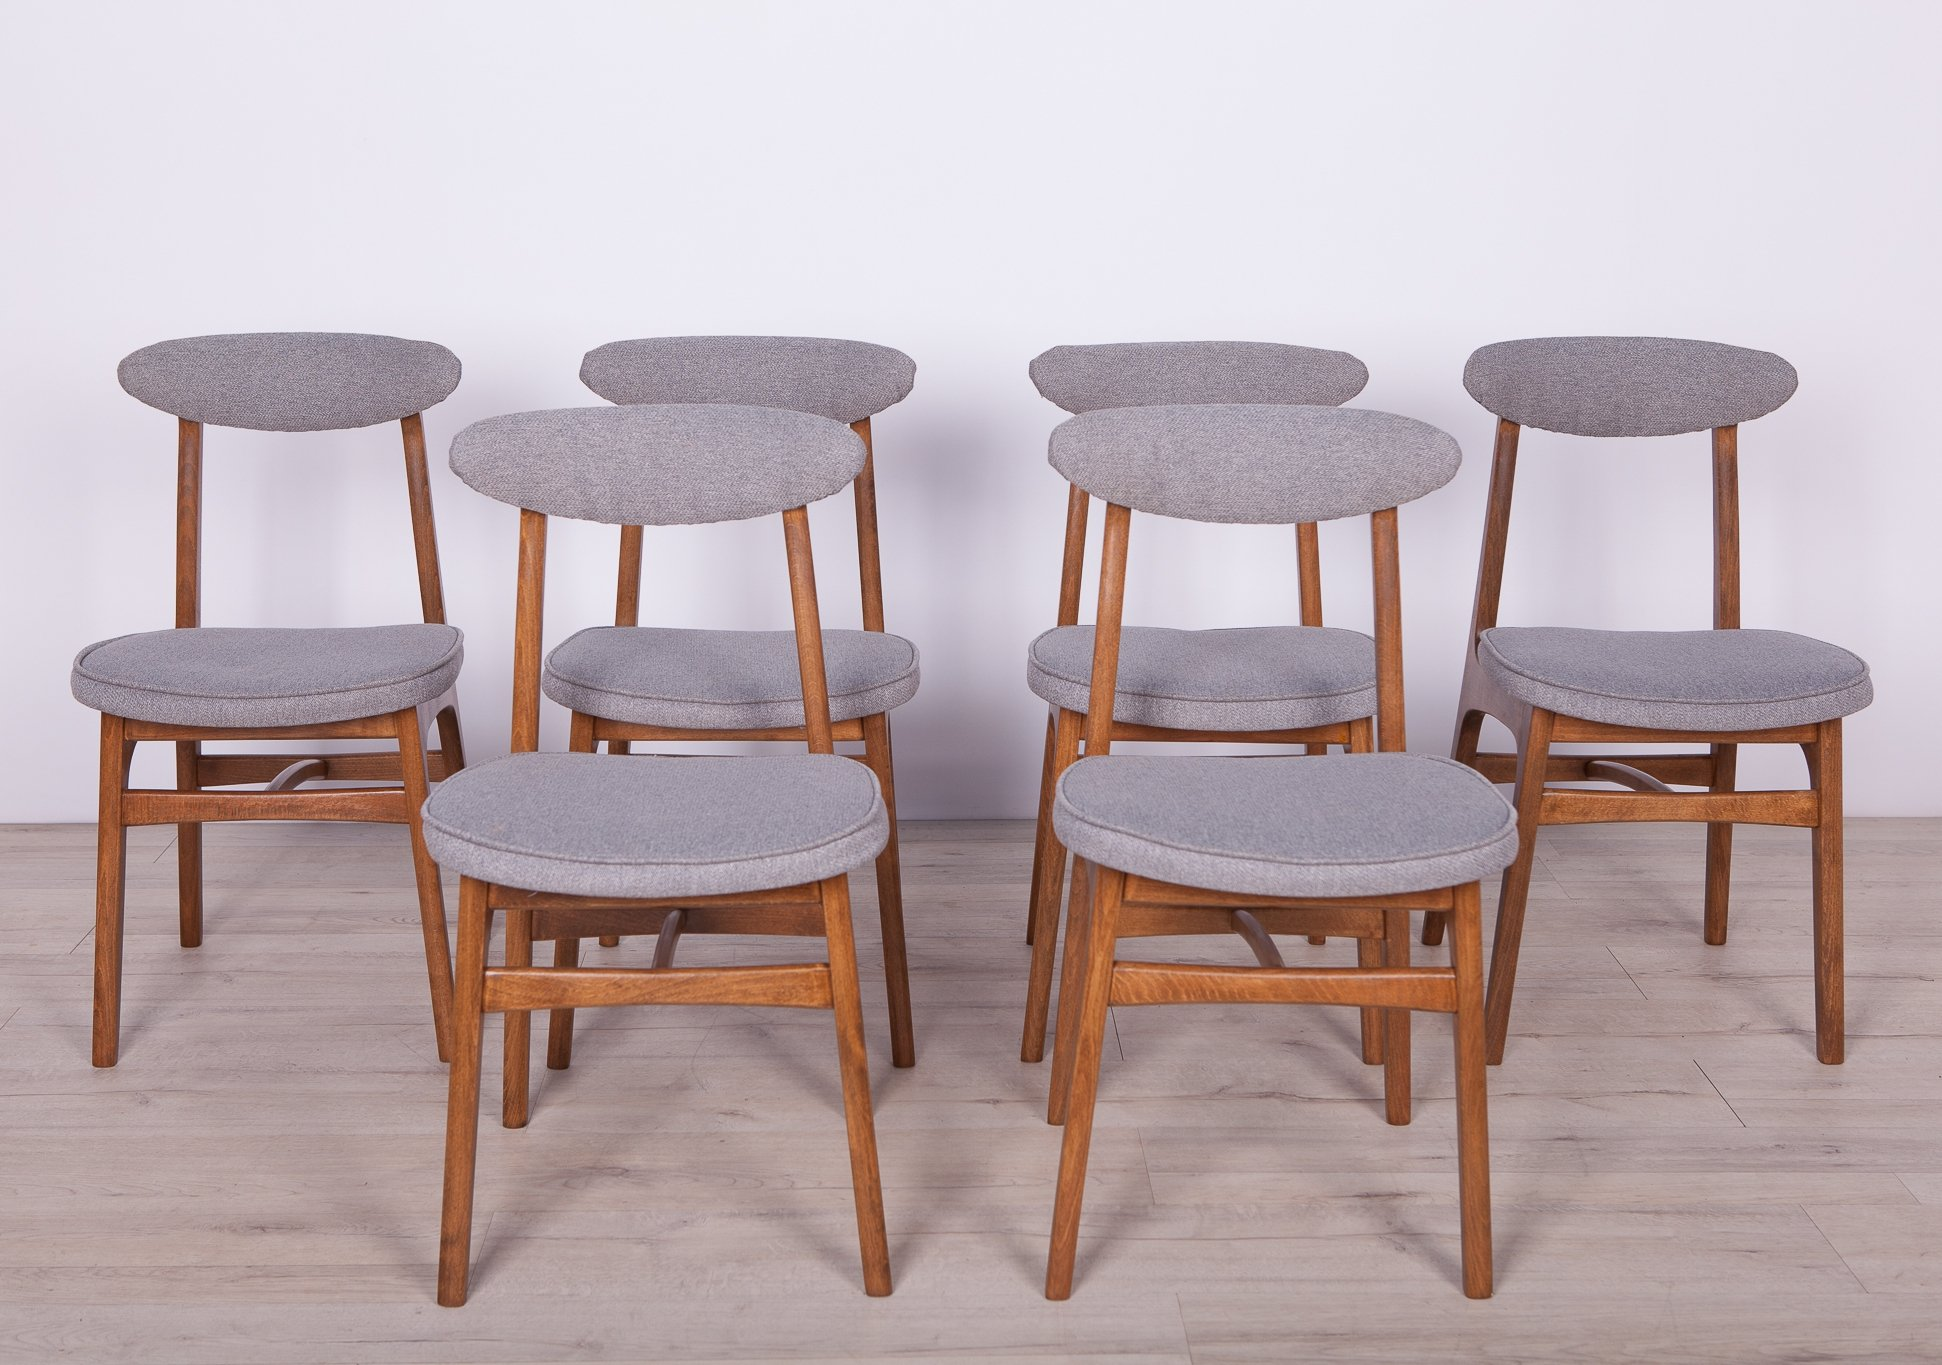 200 190 Dining Chairs By Rajmund T